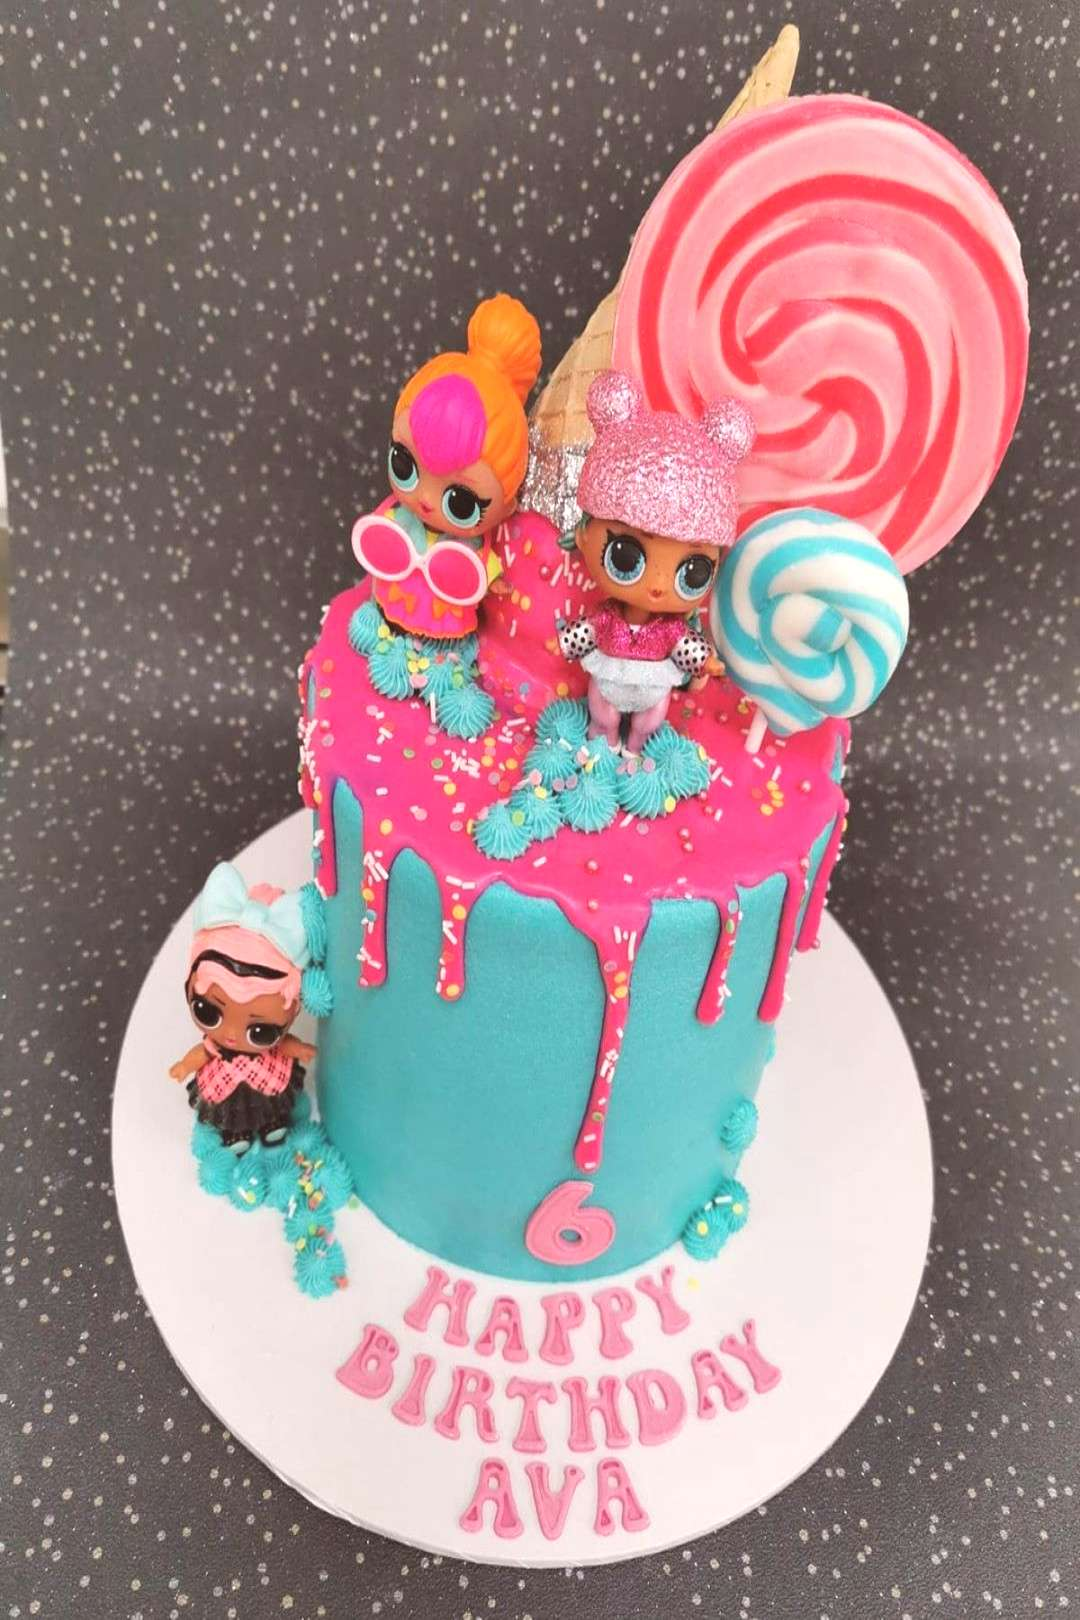 LOL themed birthday cake, with a bright pink drip decorated with